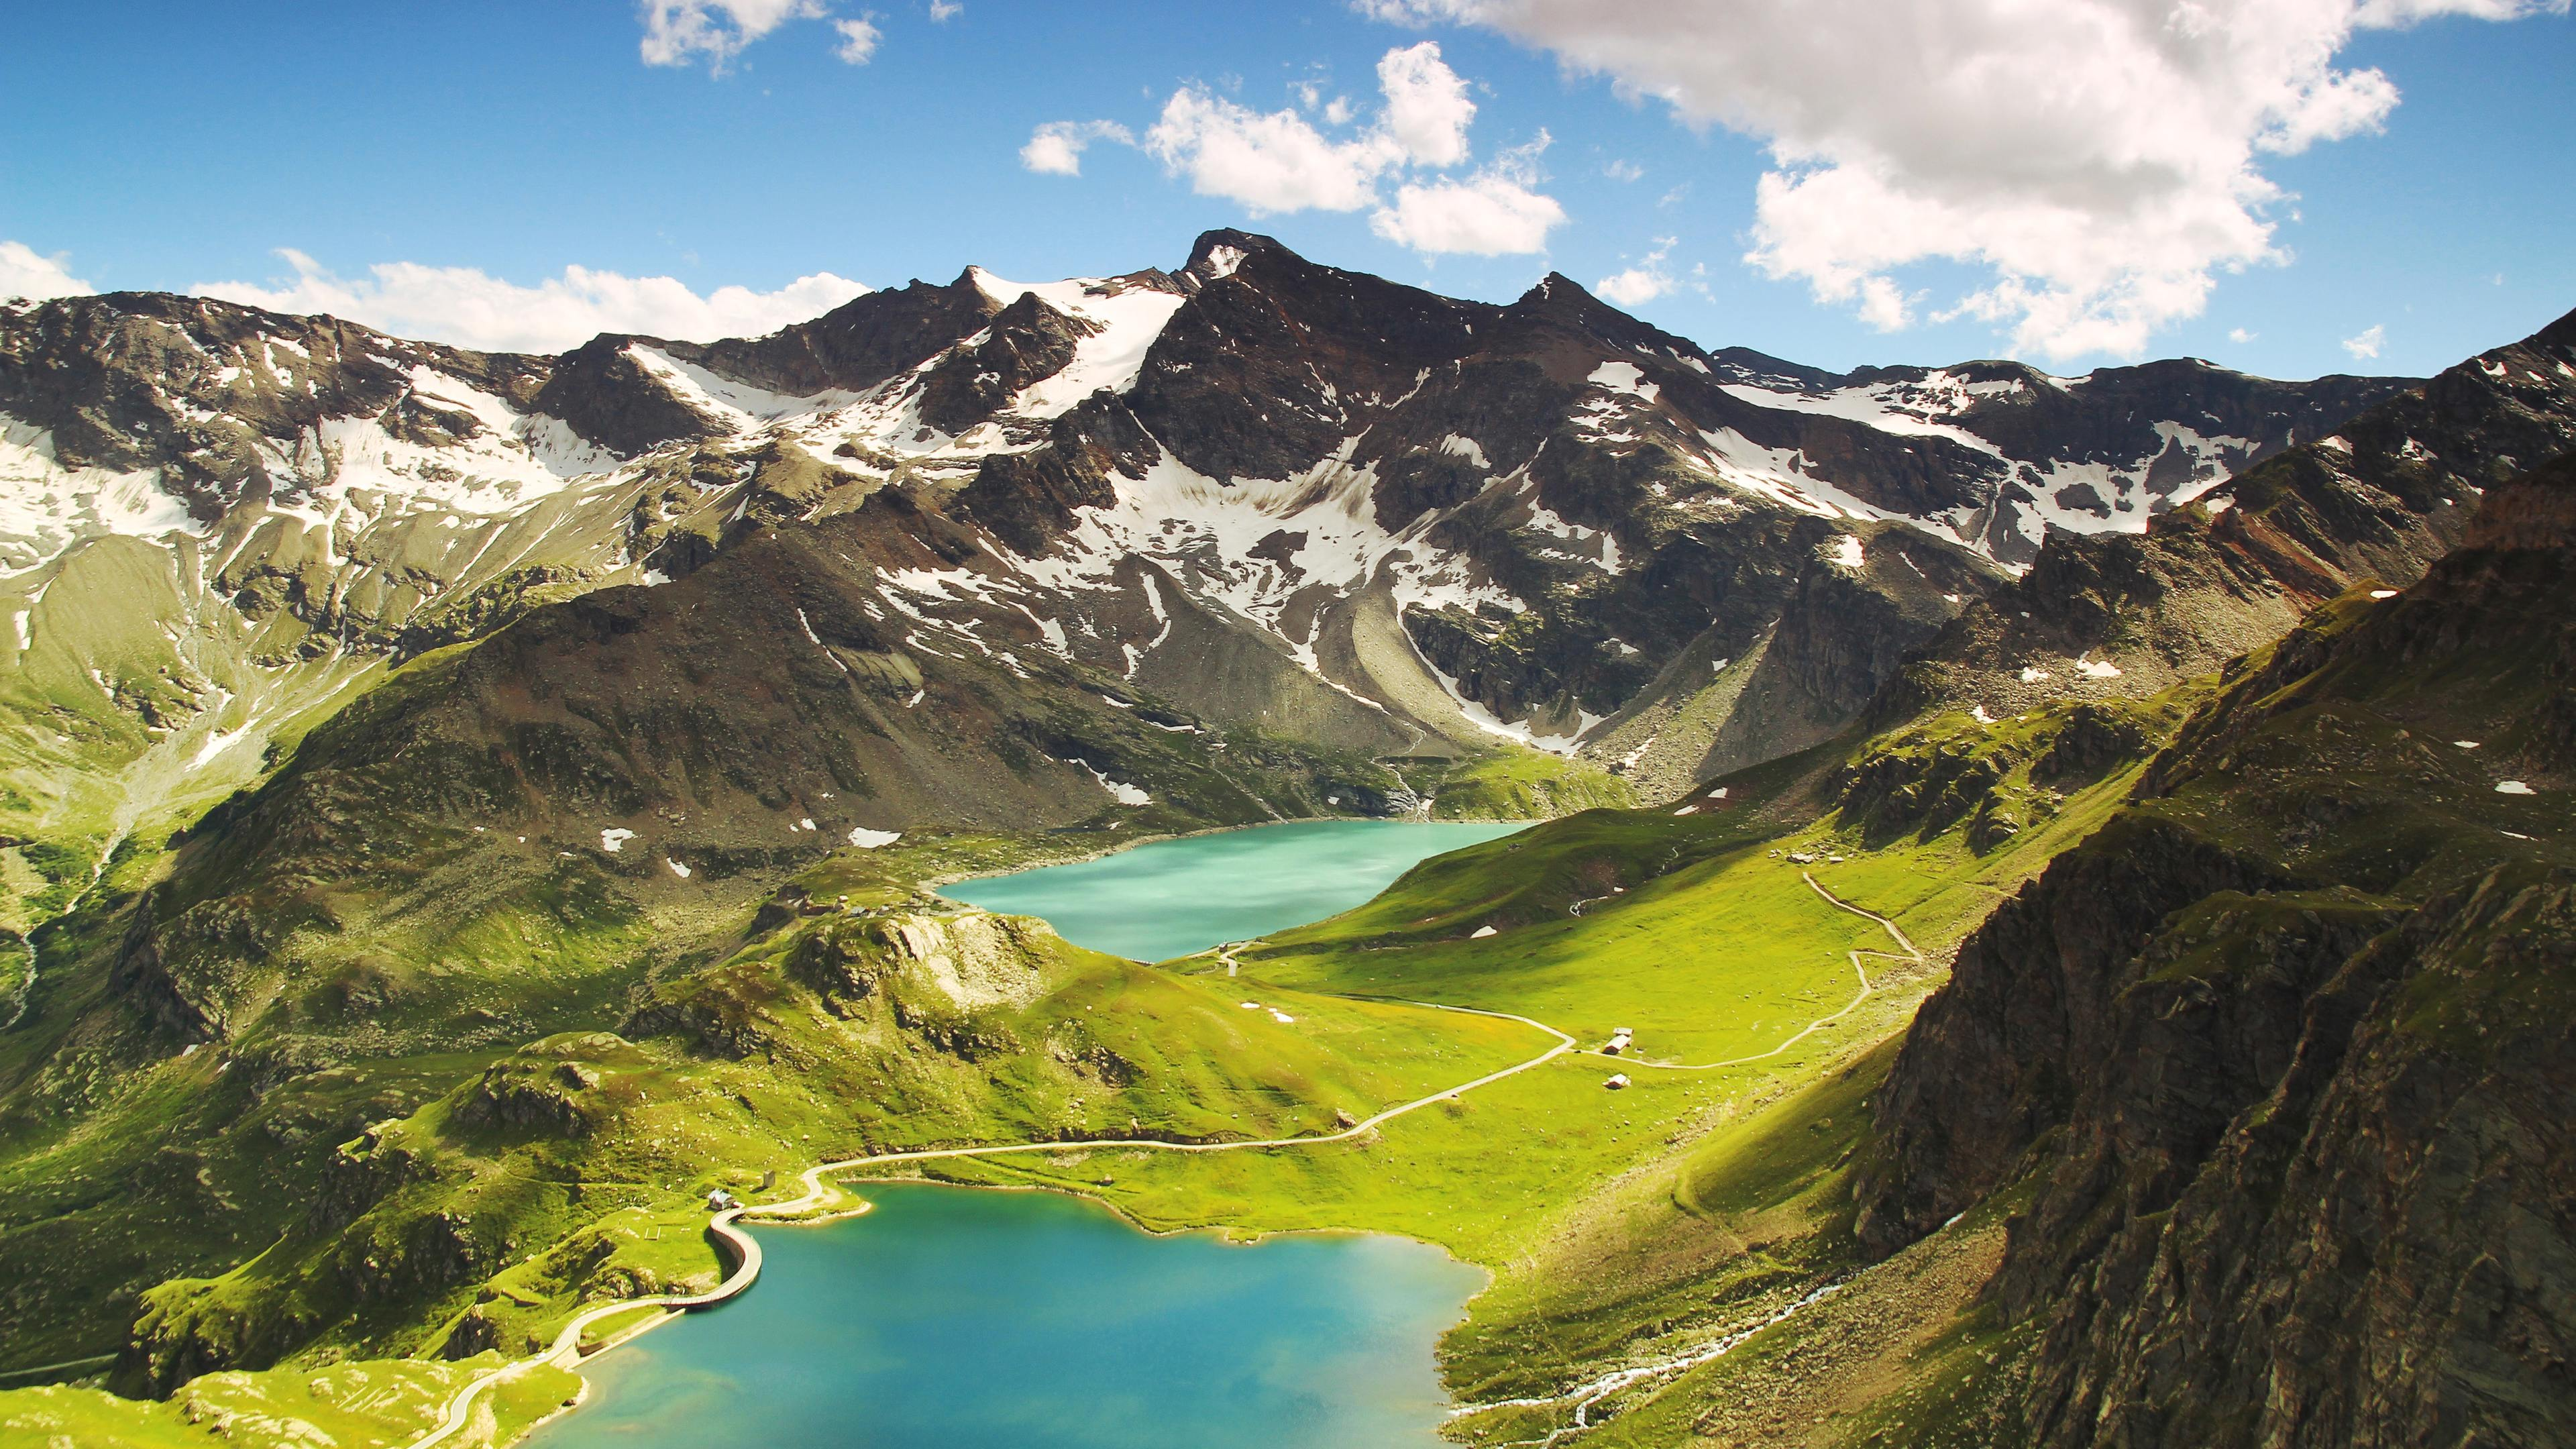 ceresole reale comune in italy 4k 1540138452 - Ceresole Reale Comune In Italy 4k - nature wallpapers, mountains wallpapers, italy wallpapers, hd-wallpapers, ceresole reale wallpapers, 5k wallpapers, 4k-wallpapers